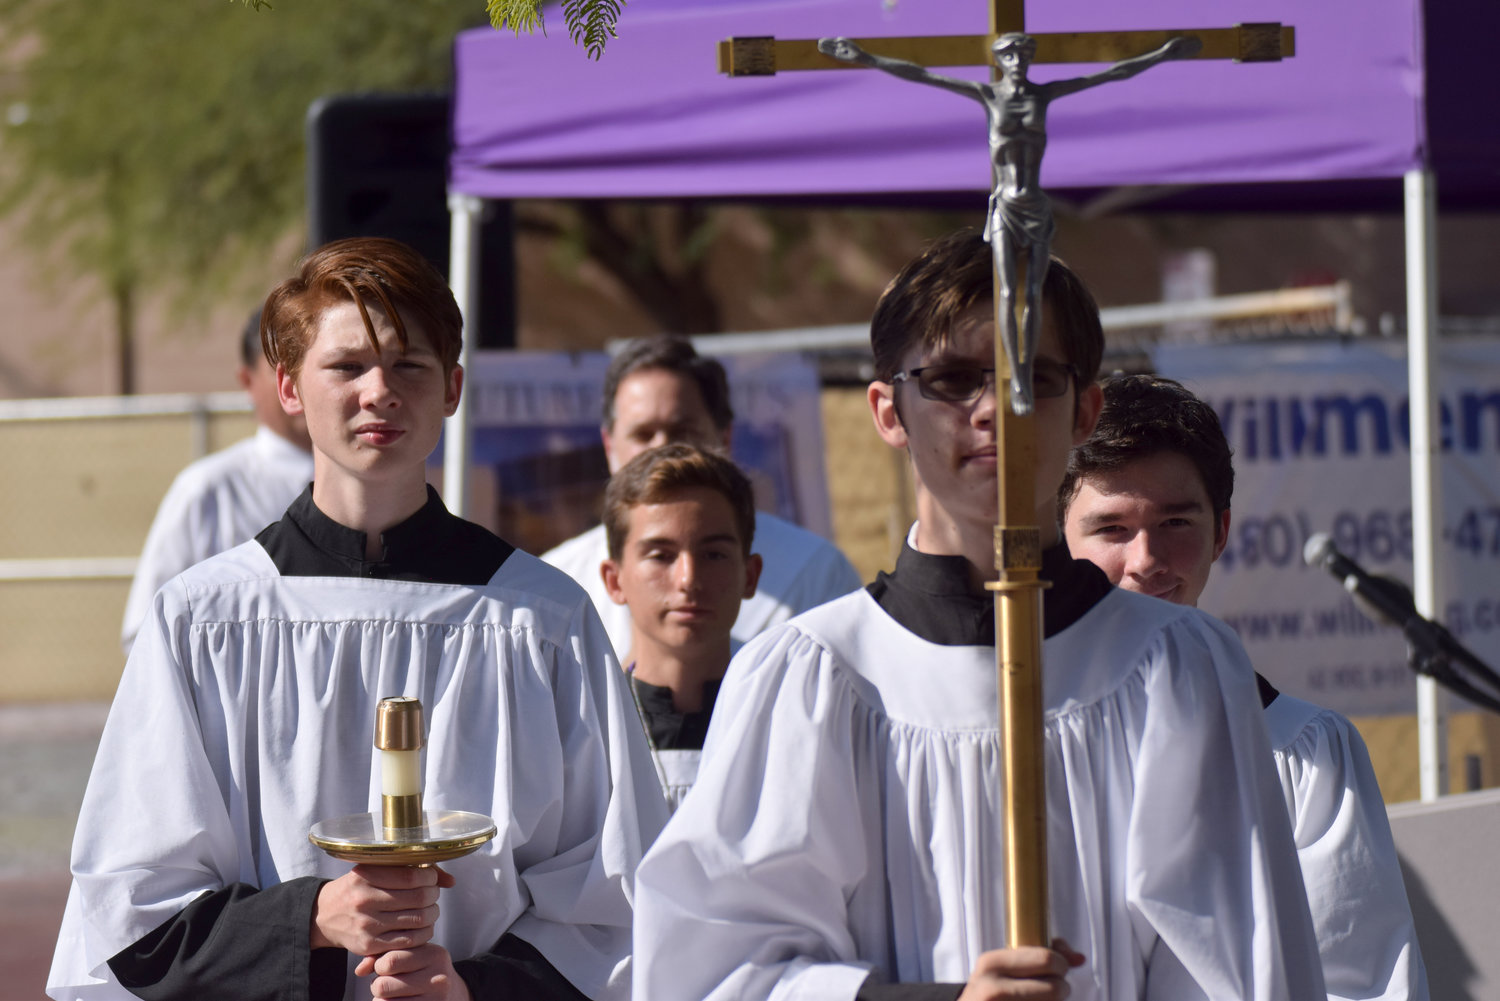 The cross bearer carries the crucifix after the Nov. 5 groundbreaking ceremony for NDP's new performing arts center.